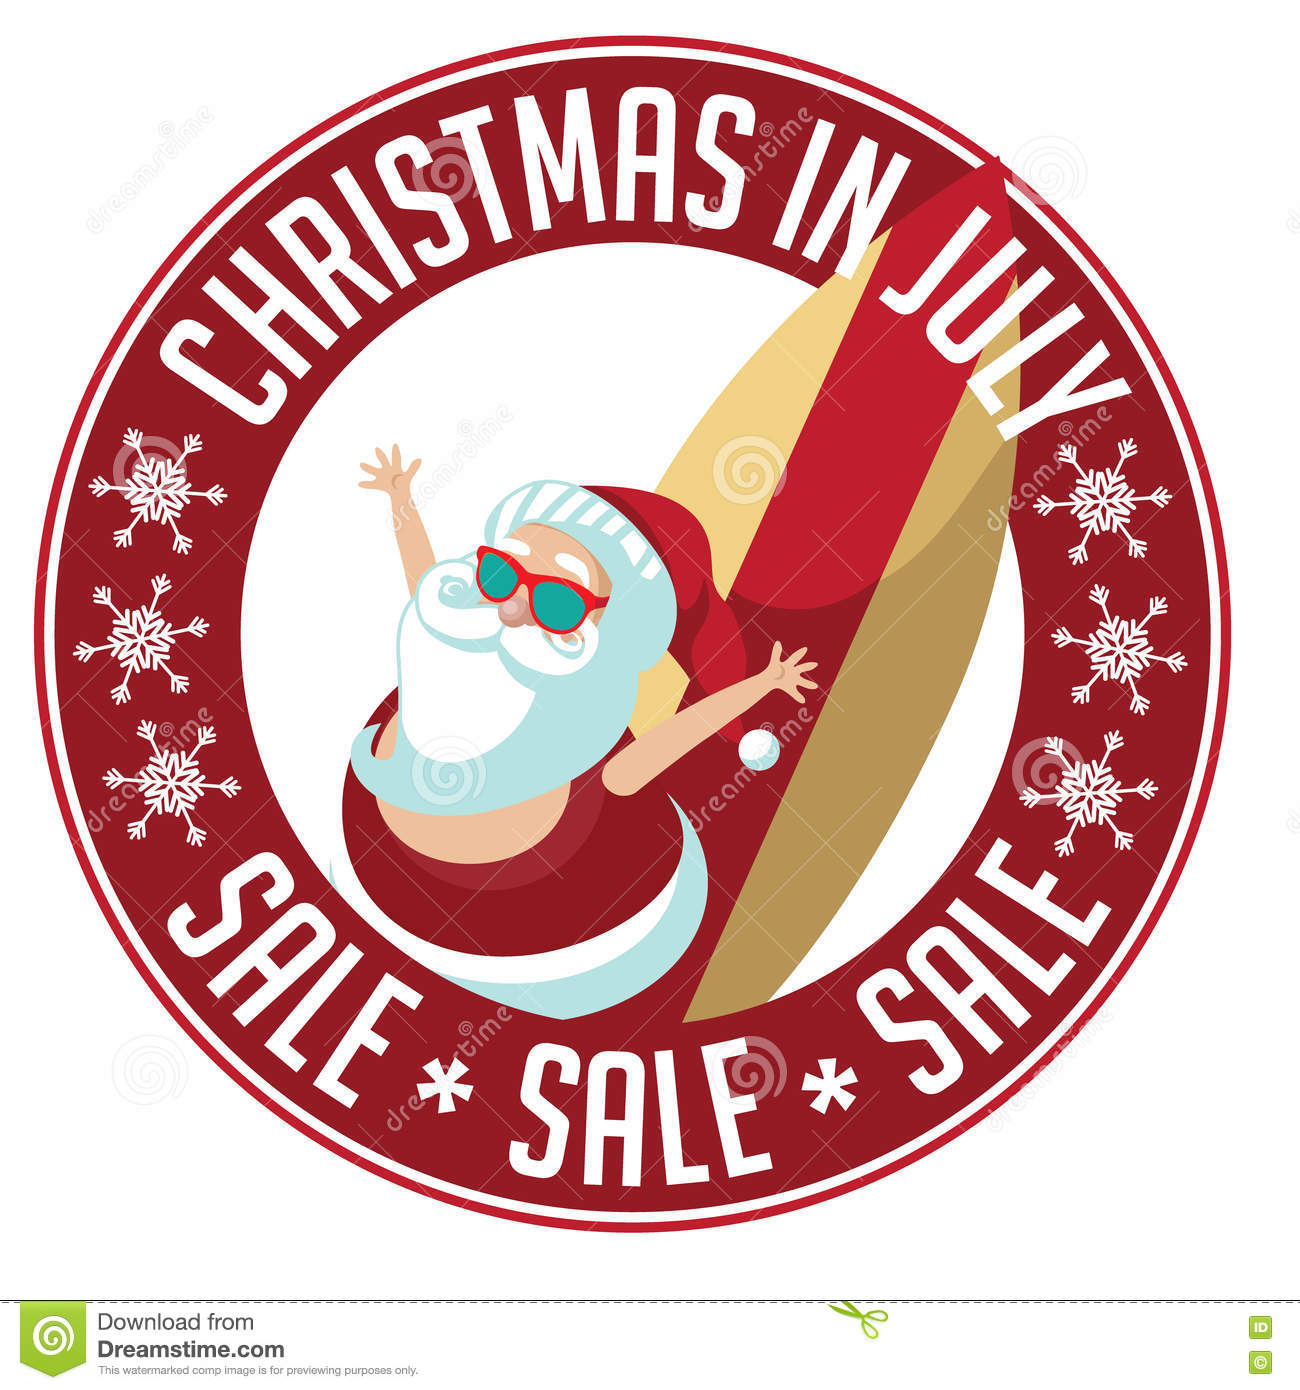 Christmas In July Sale Stamp. Stock Vector.